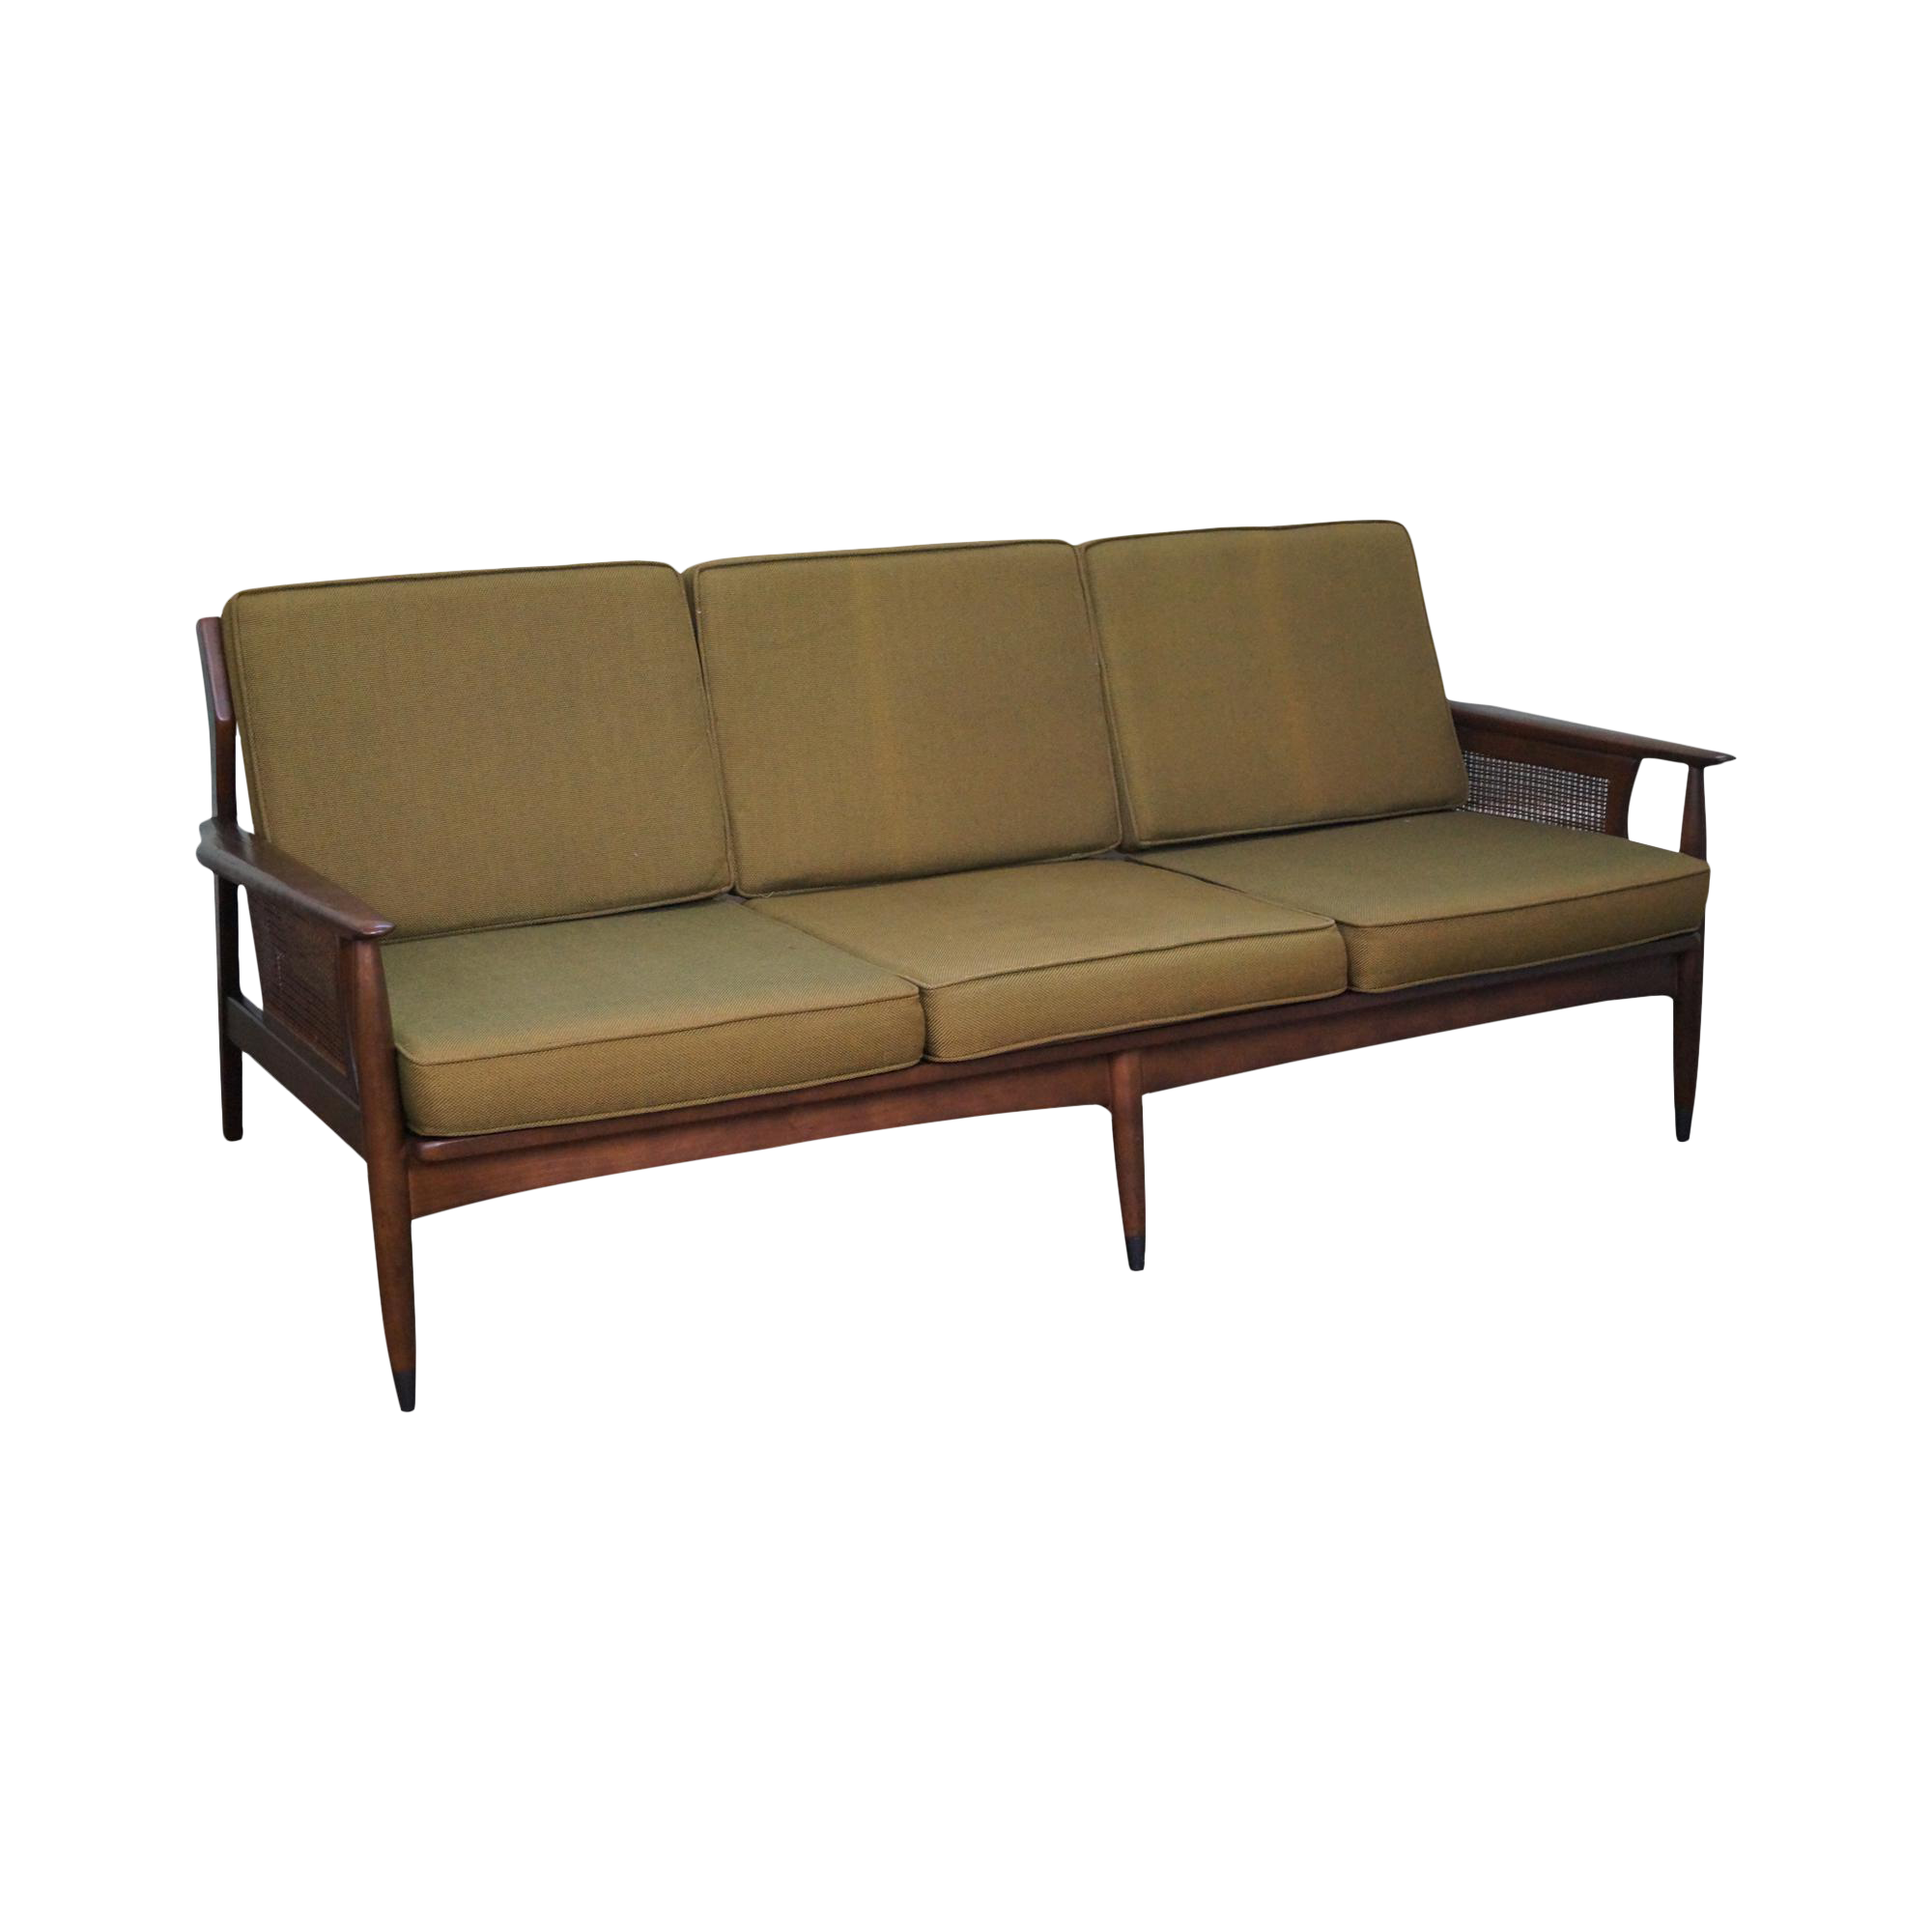 mid century danish modern couch. Mid Century Danish Modern Style Walnut Cane Arm Sofa Couch R